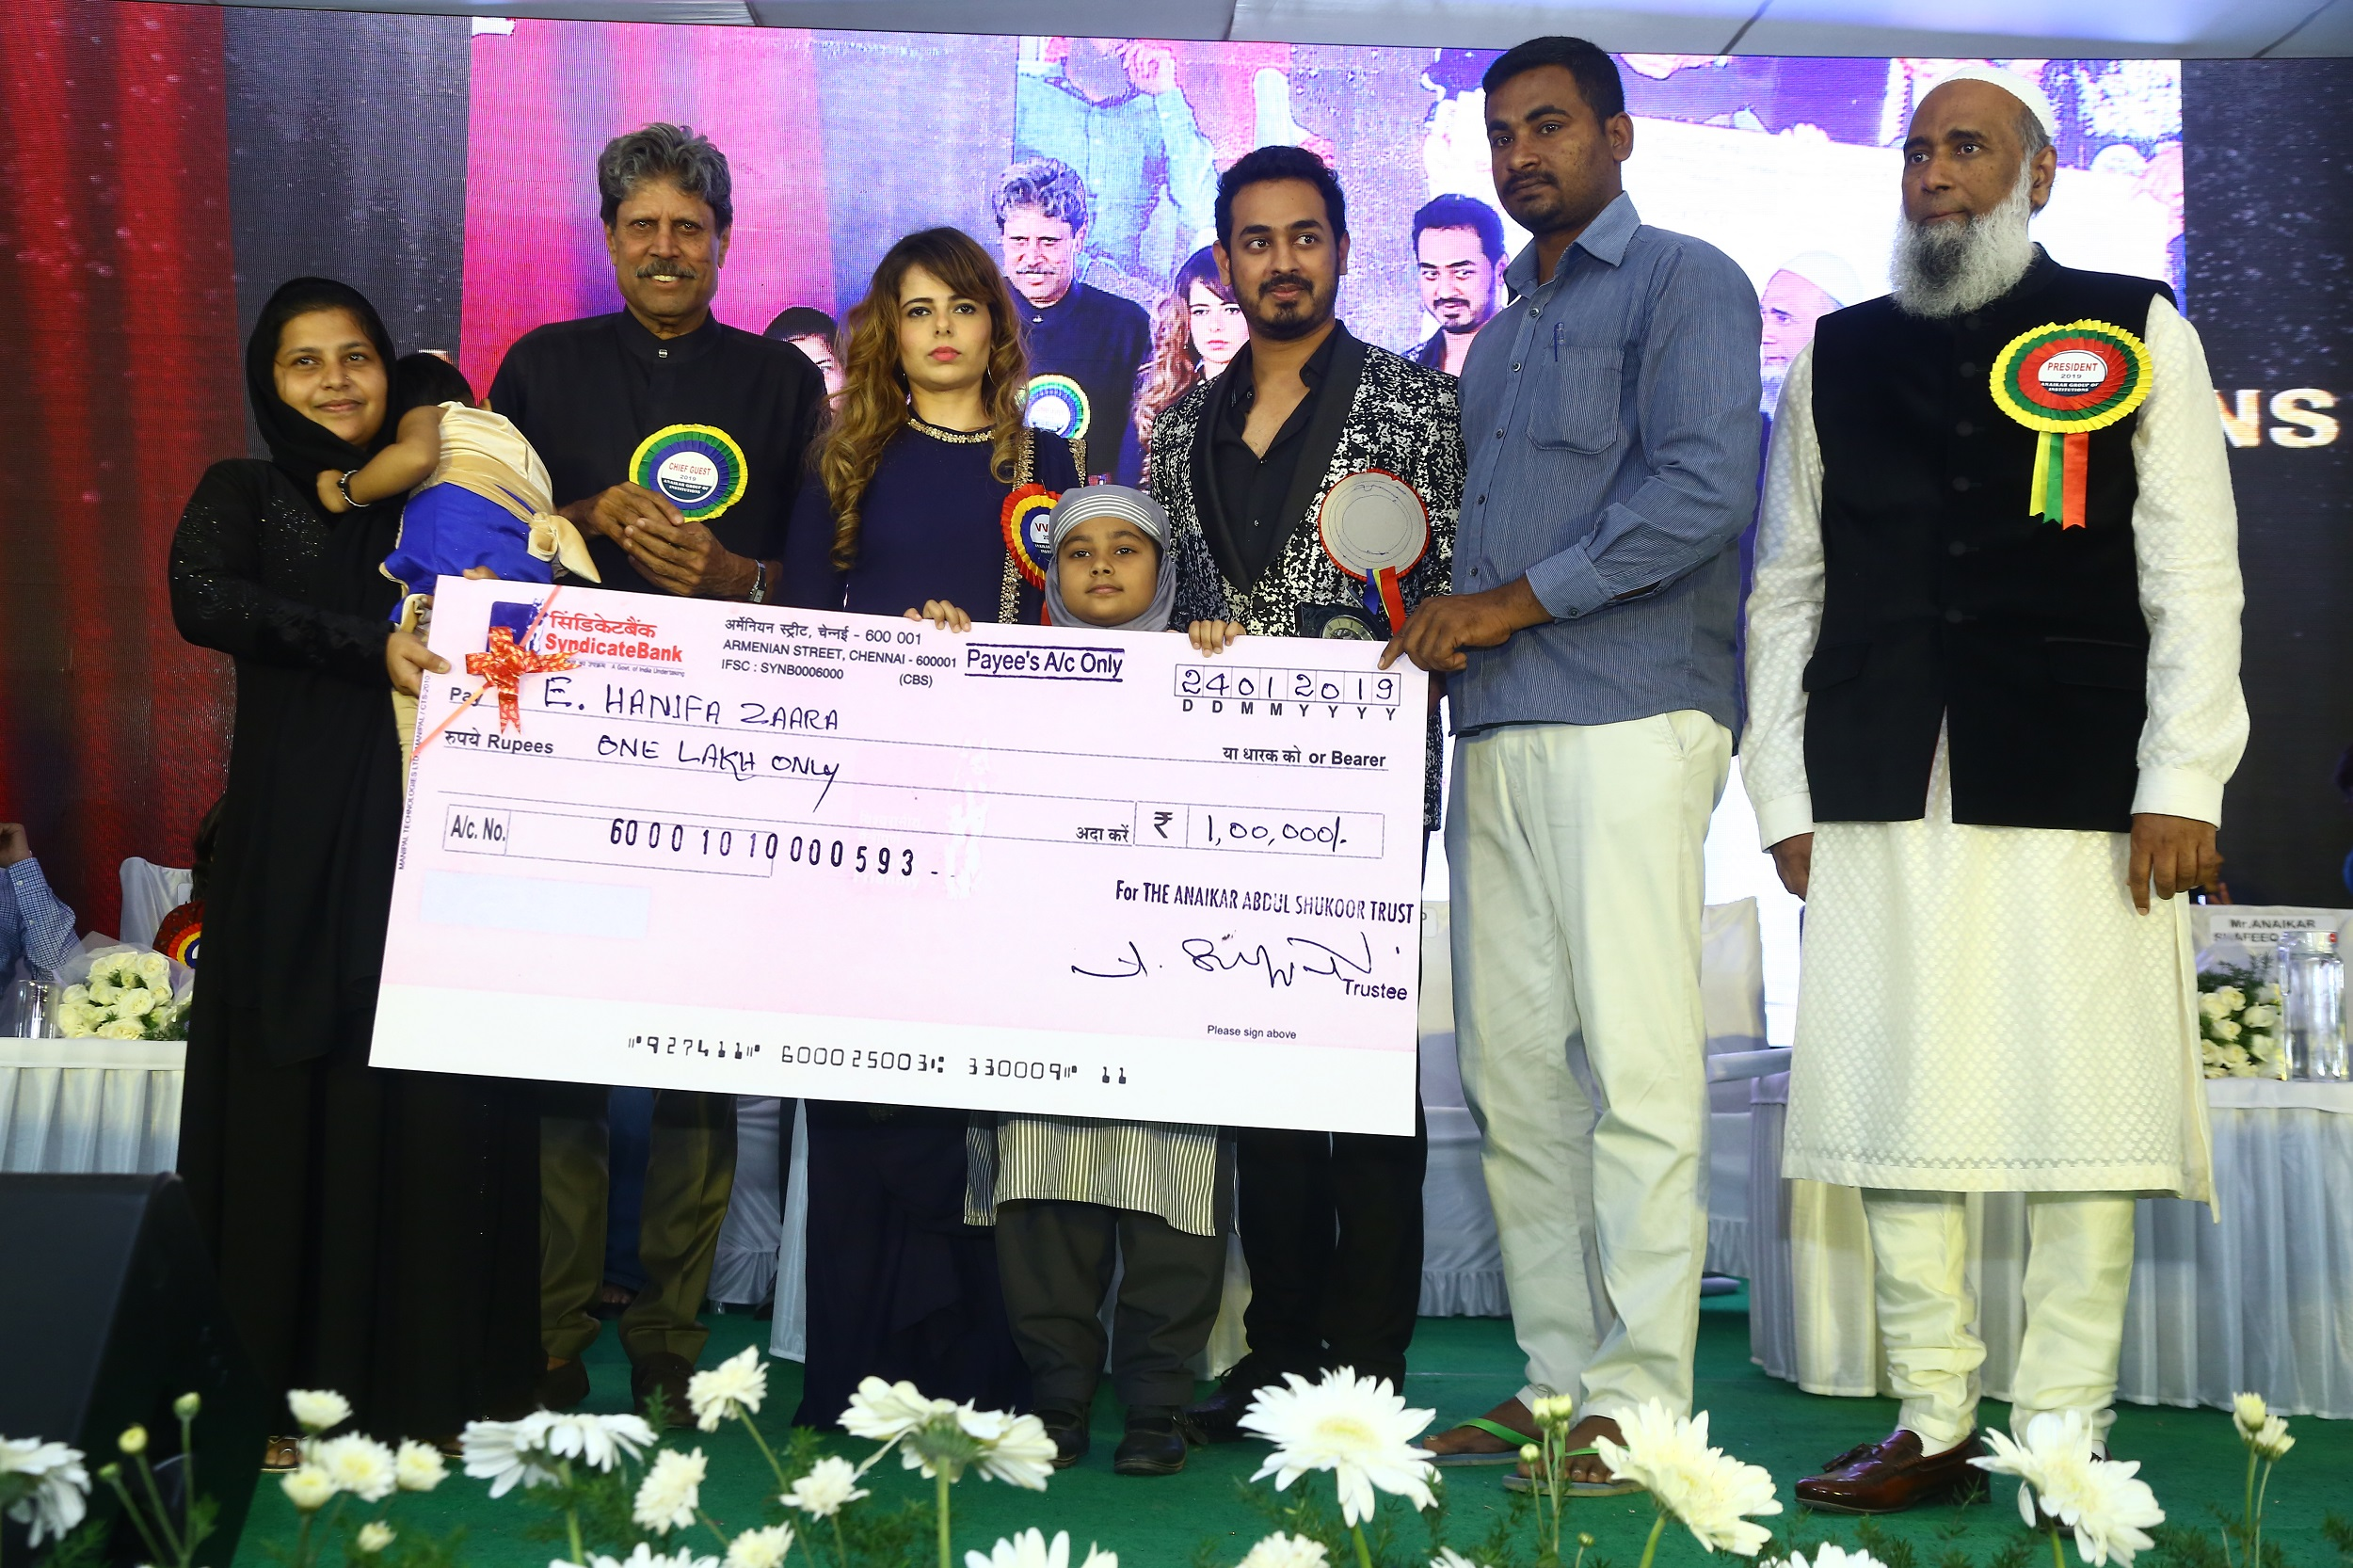 Miss Hanifa Zara and Parents with Kapil Dev, Alisha Abdhulla, Mohammed Anaikar and Mr Anaikar shafeeq Ahmed